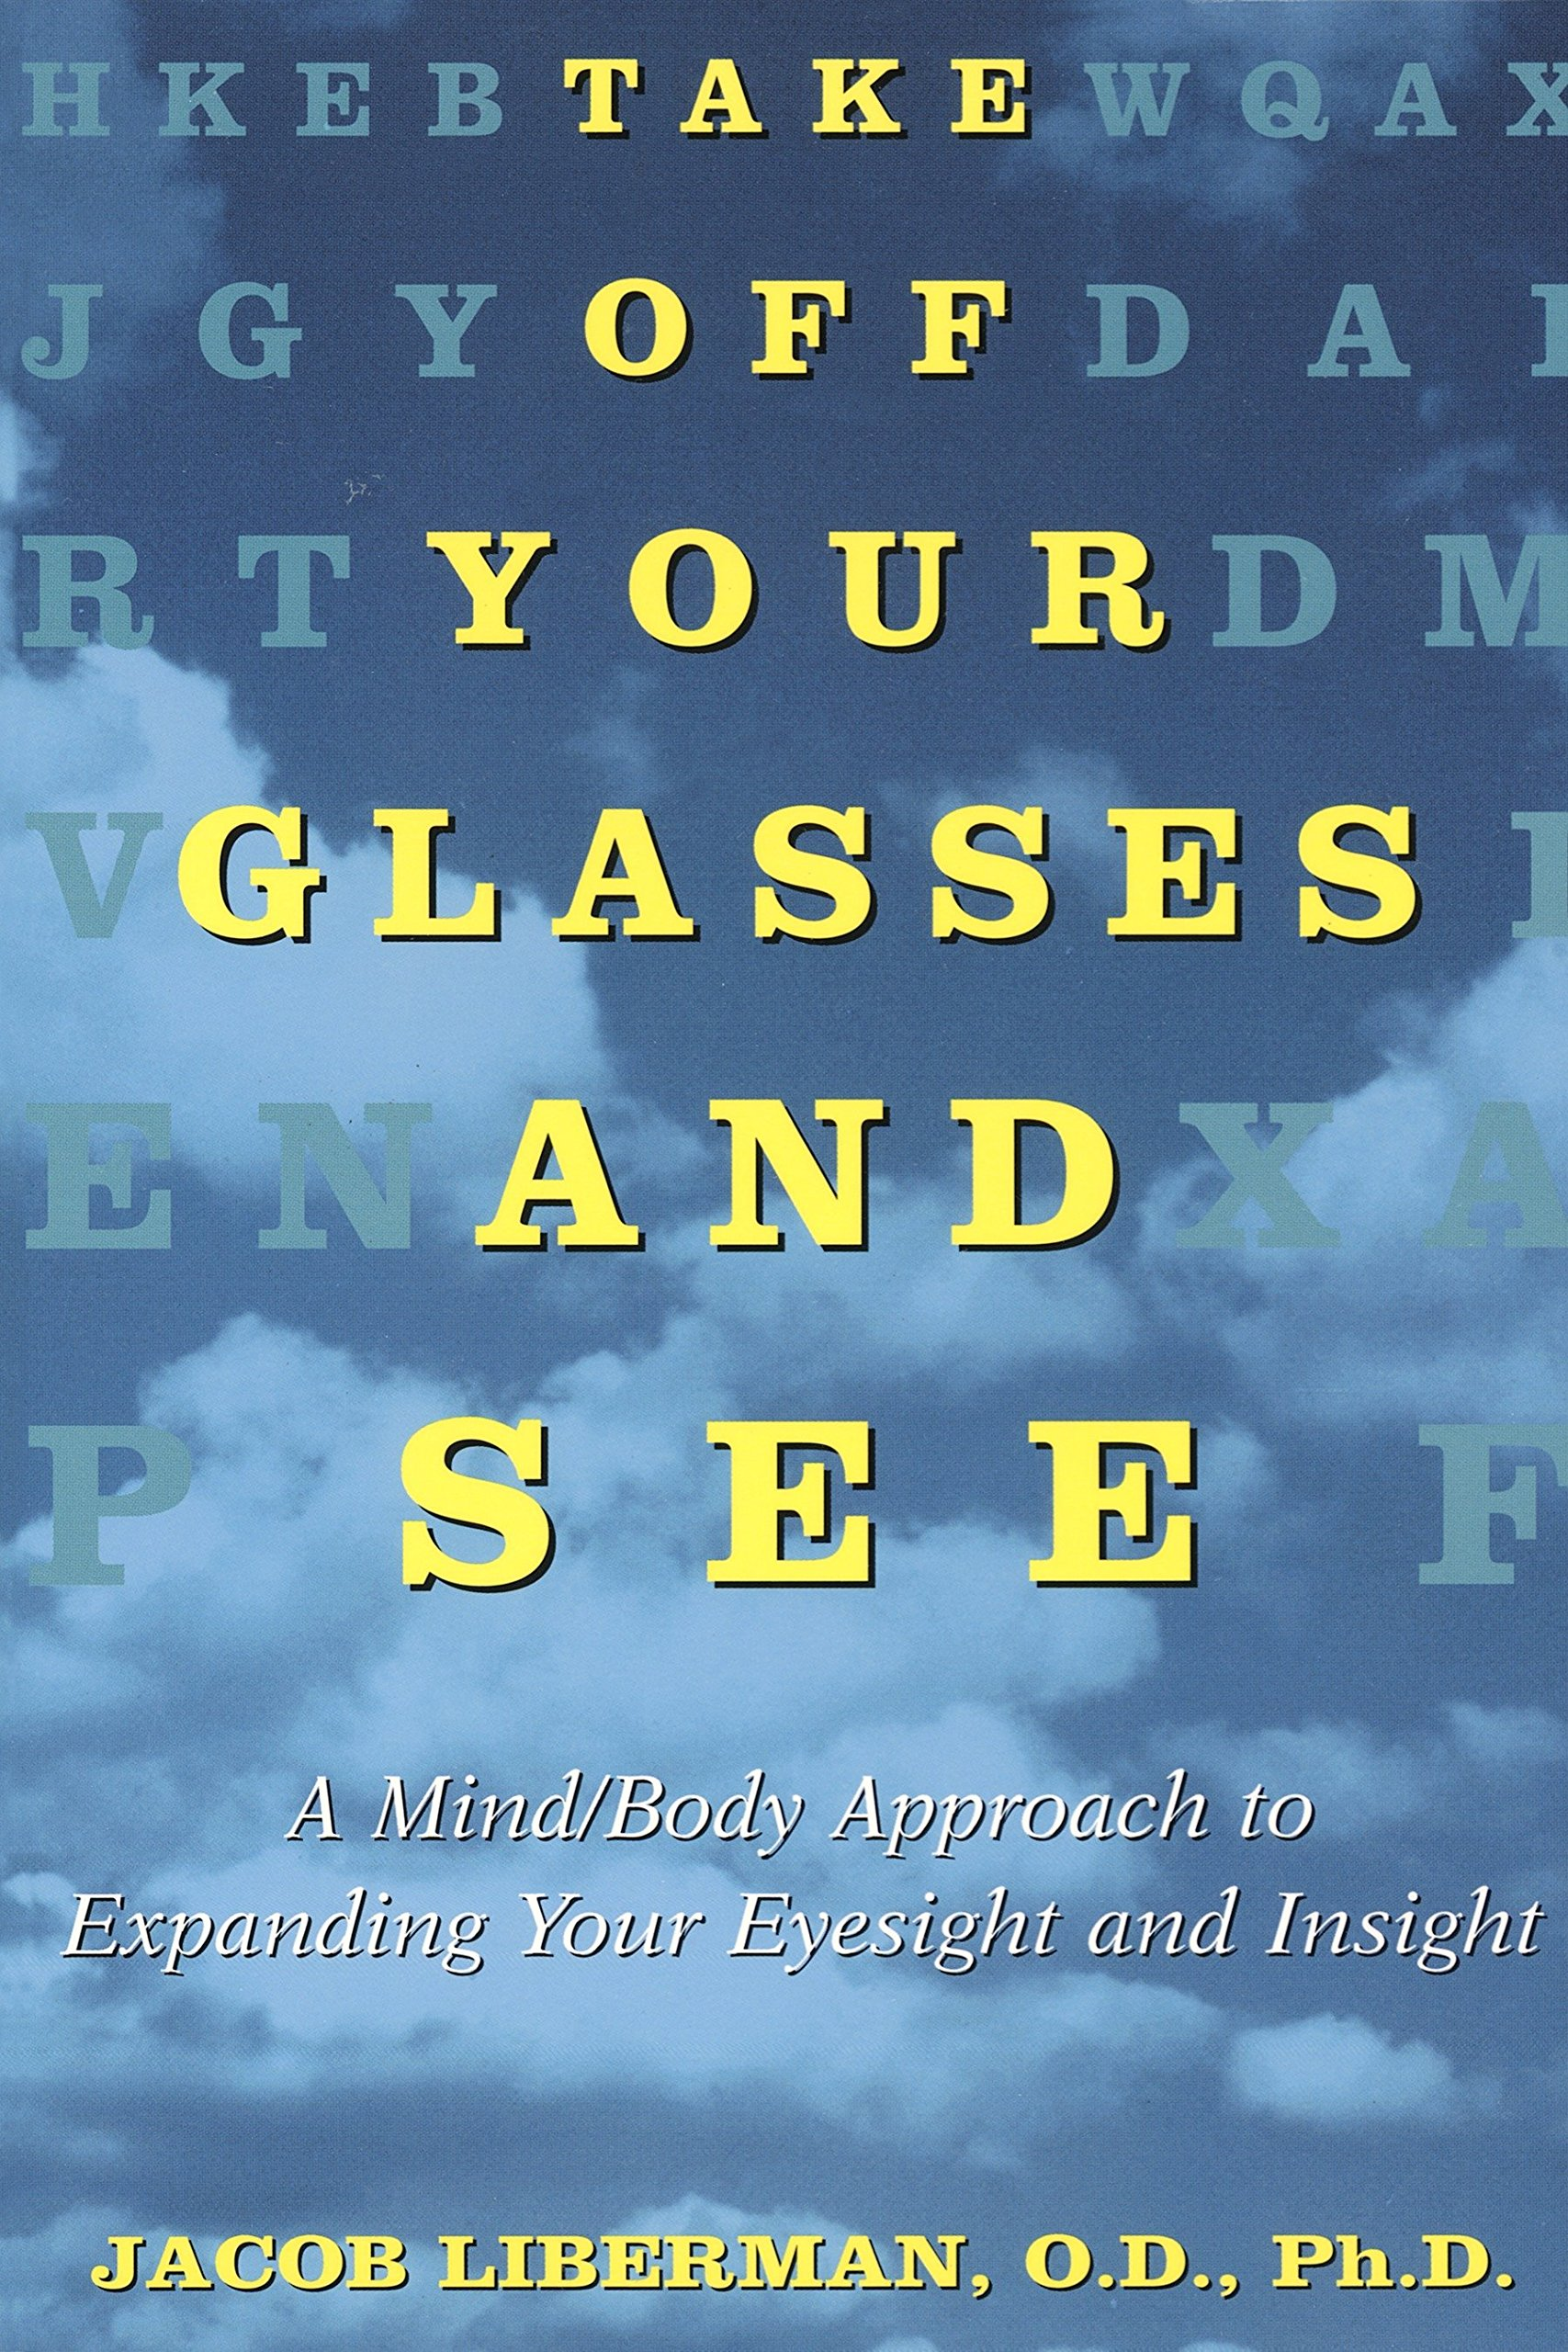 Take Off Your Glasses And See  A Mind Body Approach To Expanding Your Eyesight And Insight